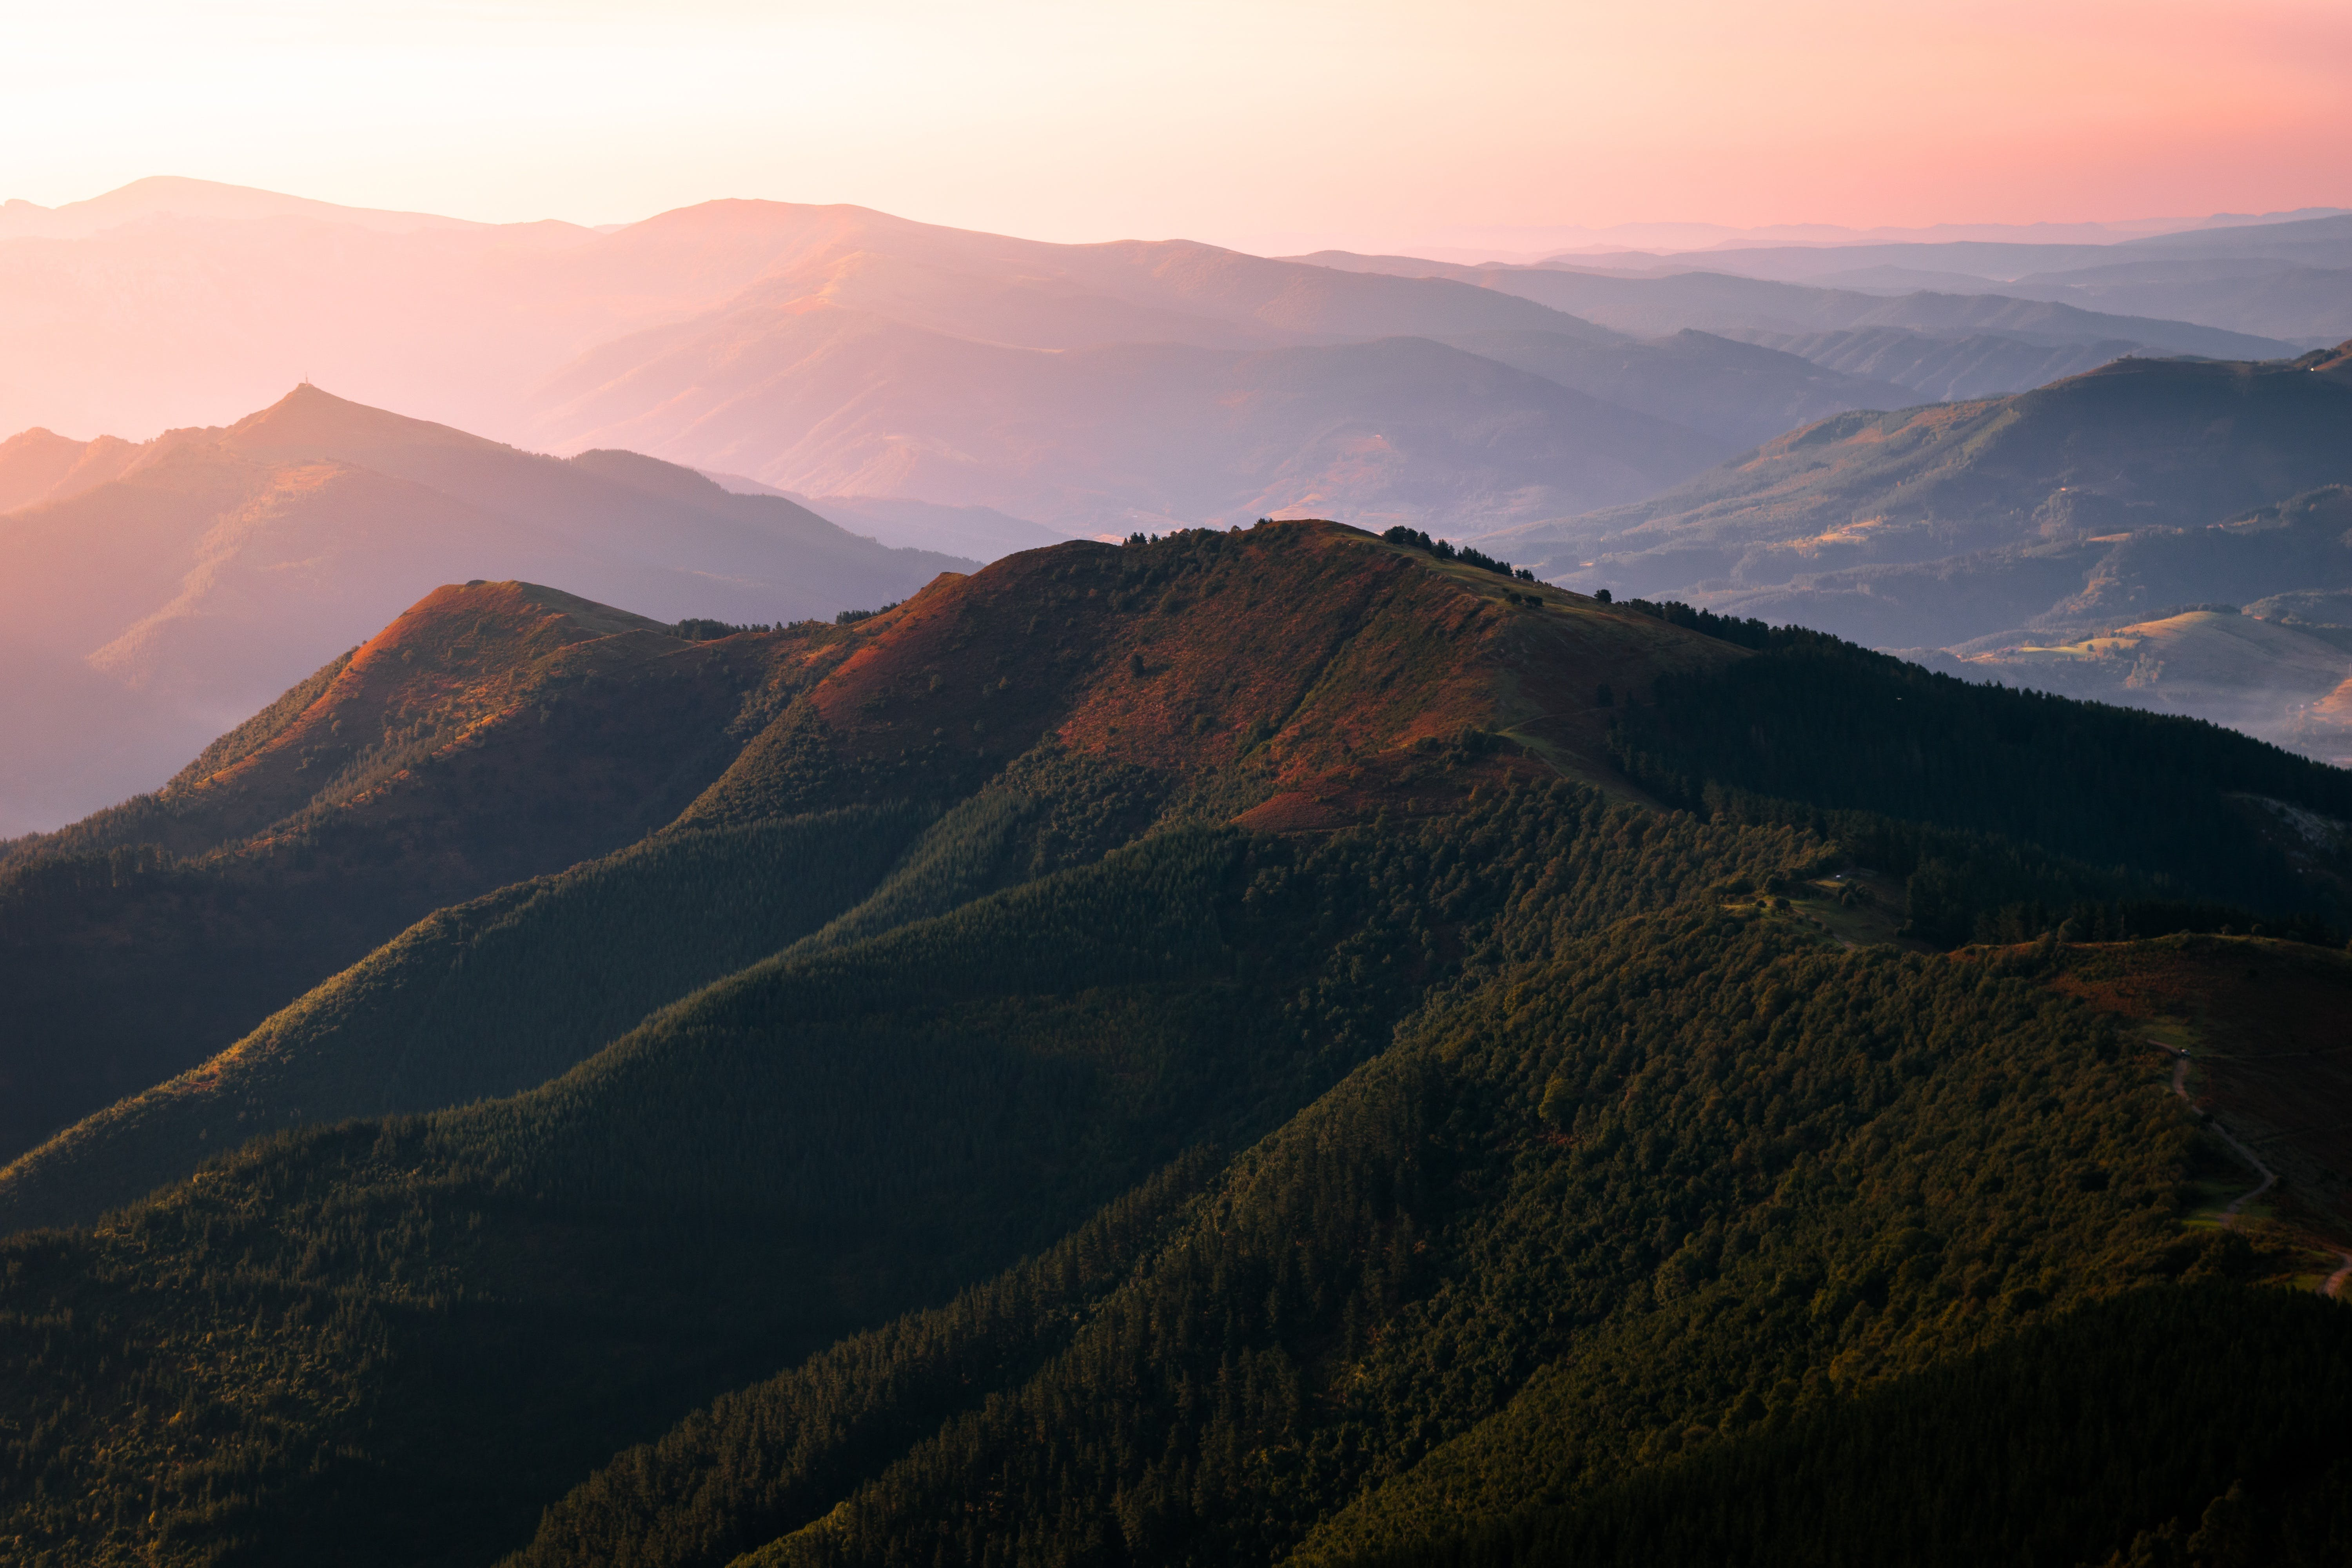 Arial Photography of Green Mountain during Sunset